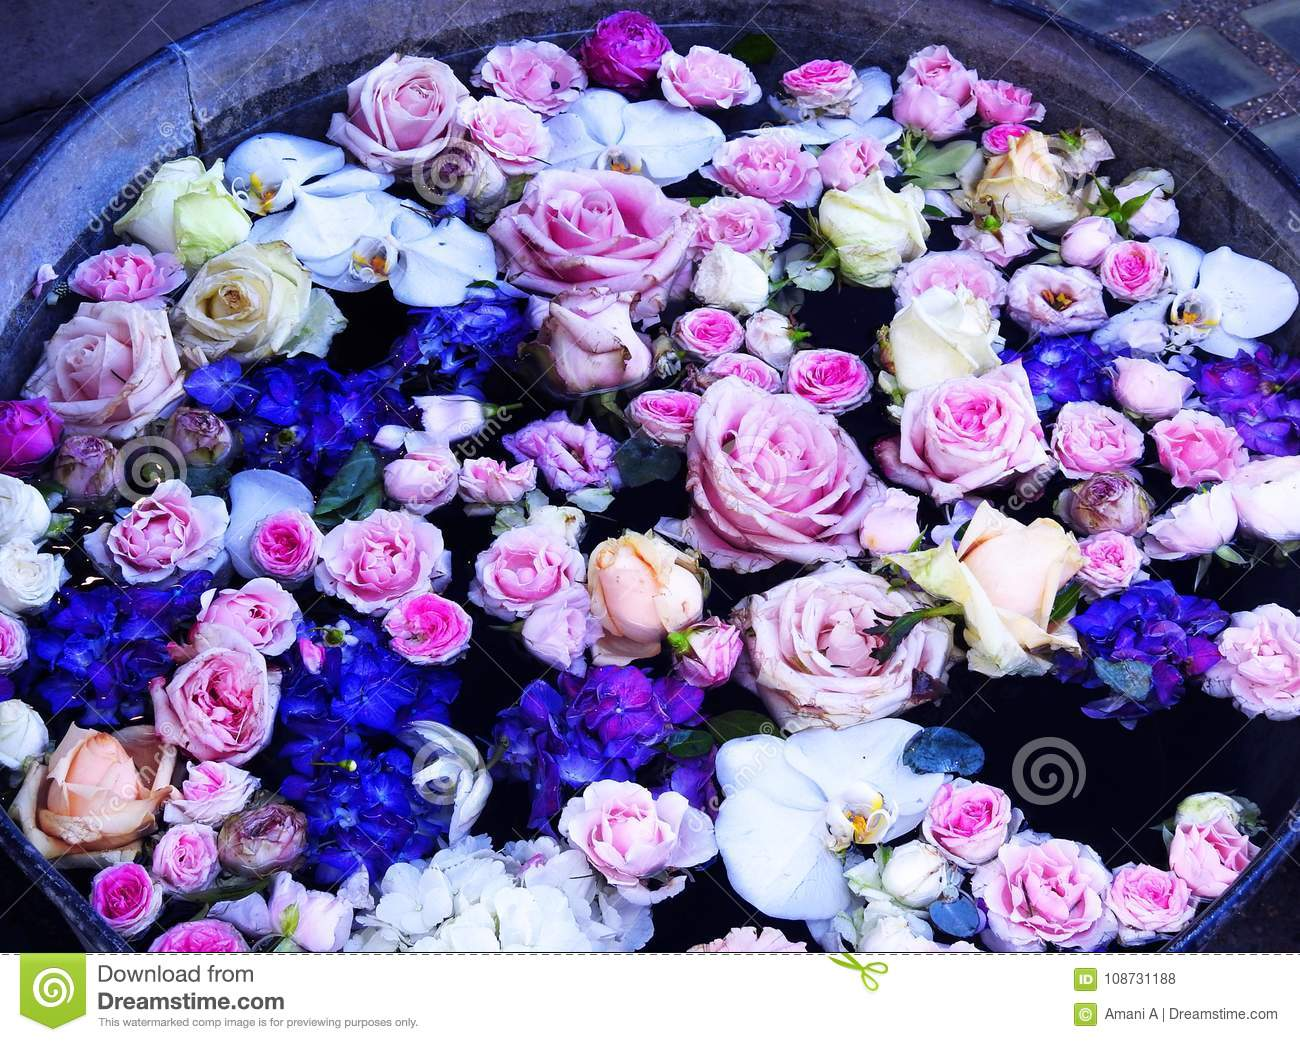 Pail of Flowers Floating in Water